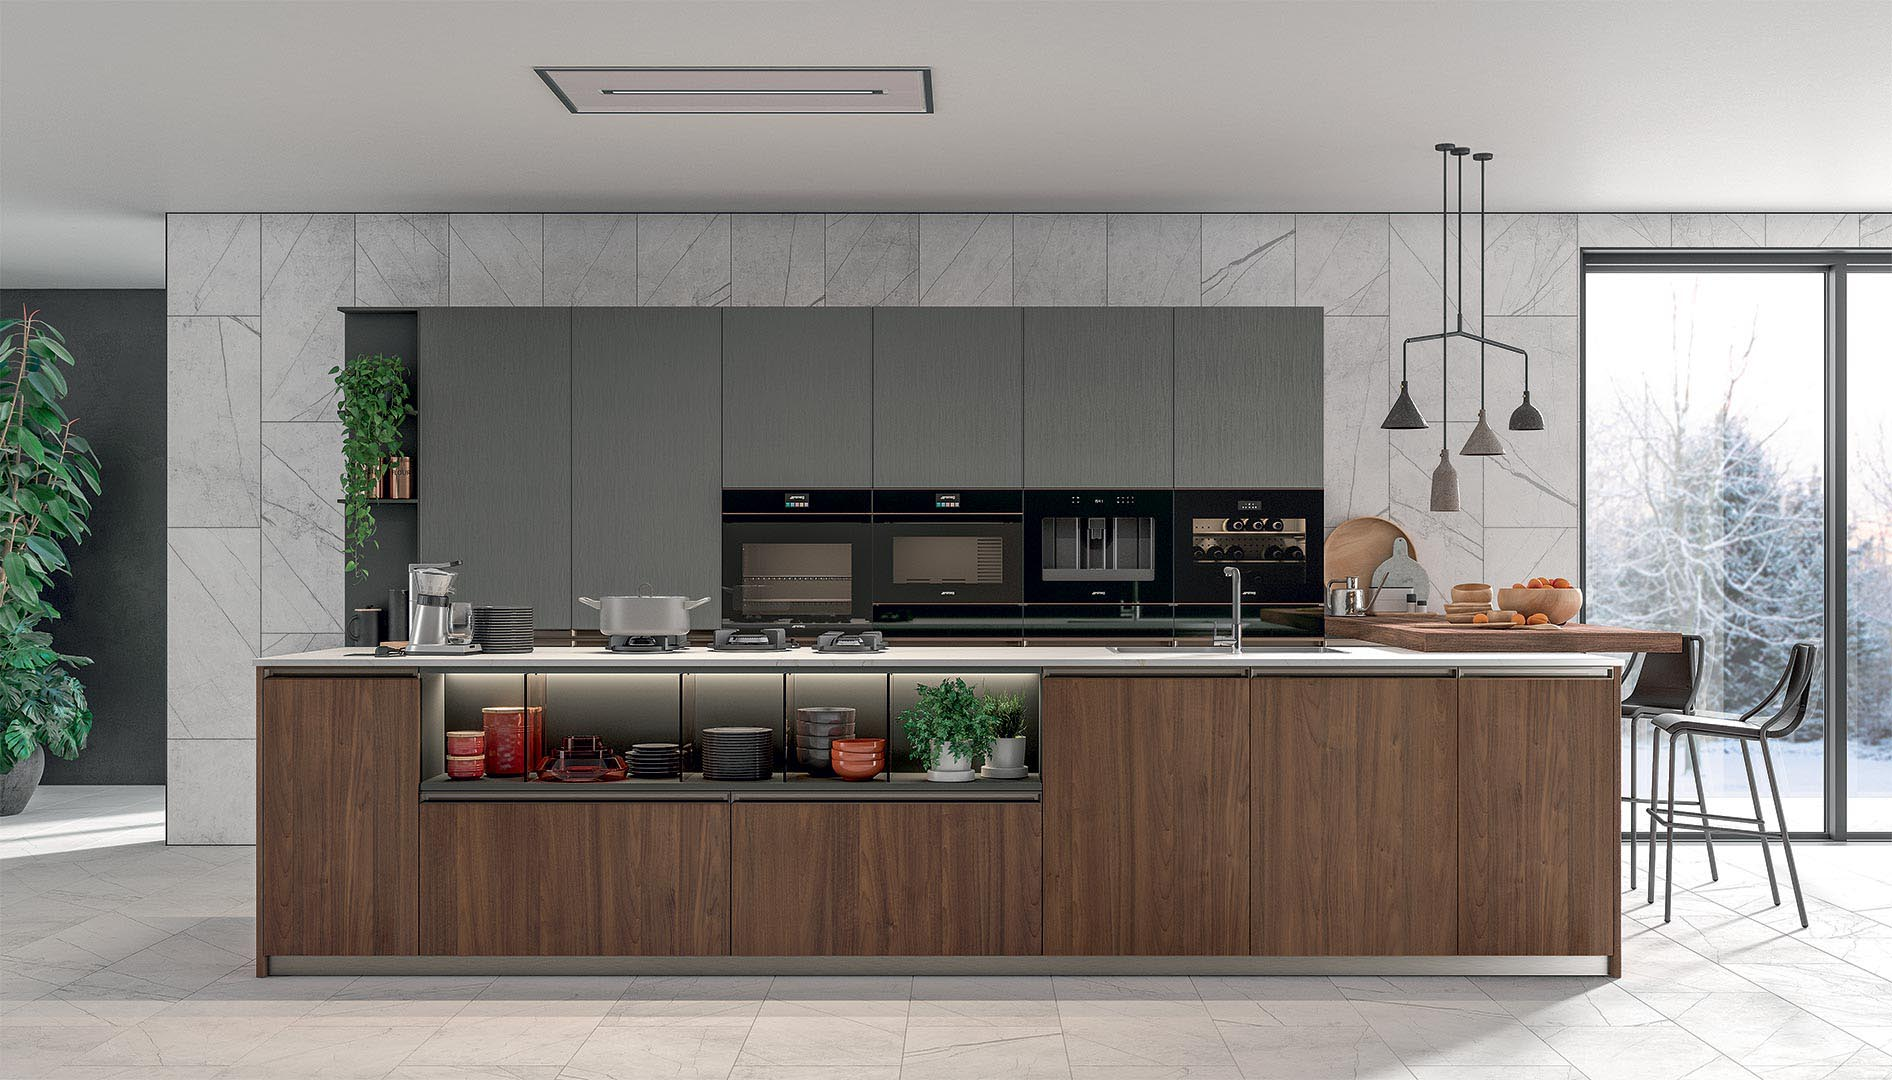 Immagina Plus - Modern Kitchens - Cucine LUBE